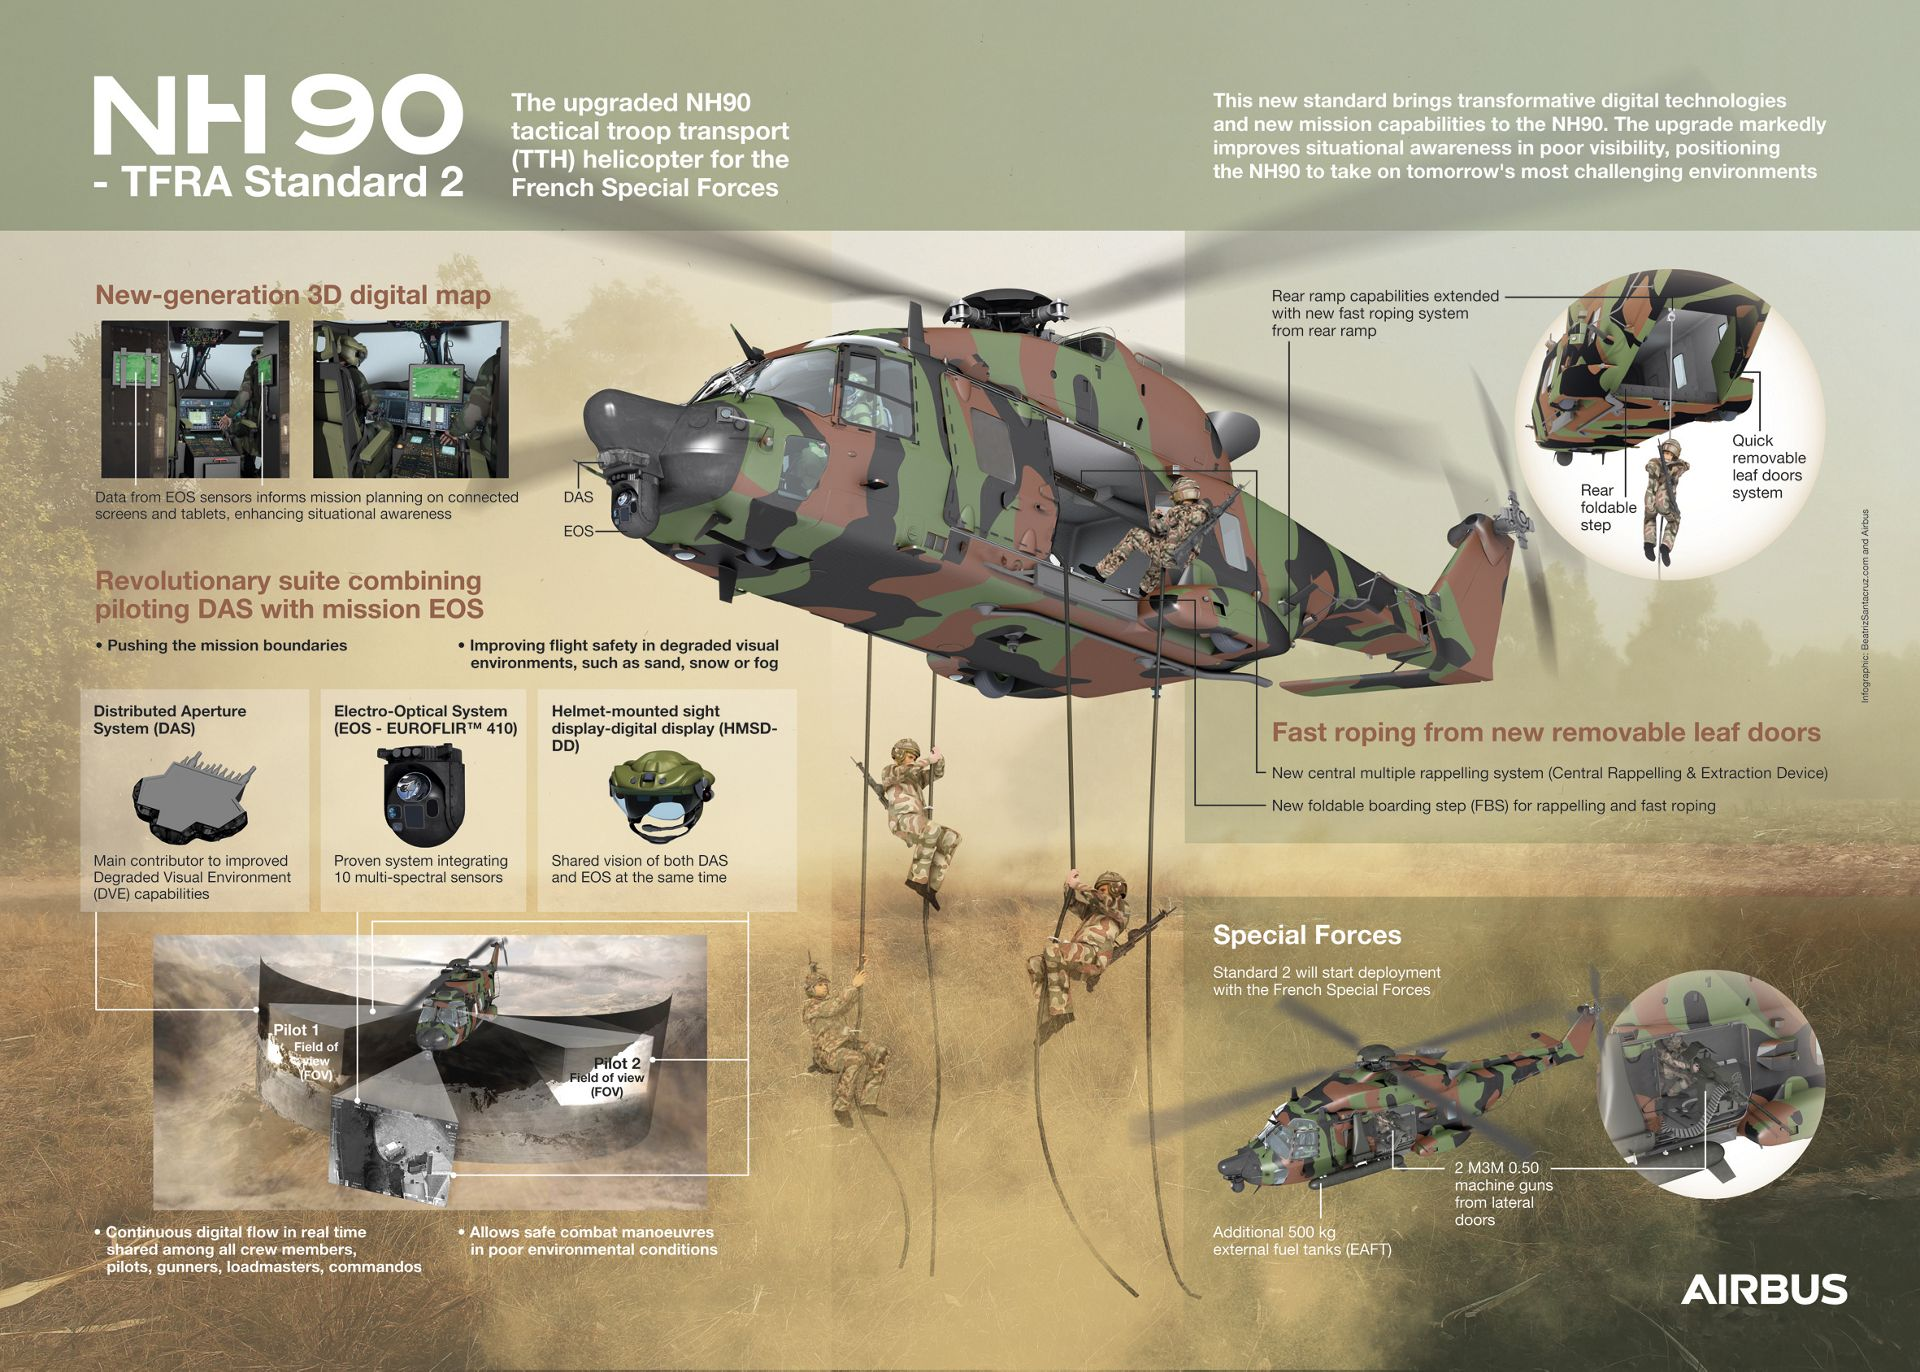 https://airbus-h.assetsadobe2.com/is/image/content/dam/stock-and-creative/infographic/NH90-TFRA-Standard2-infographic_Airbus-RGB.jpg?wid=1920&fit=fit,1&qlt=85,0